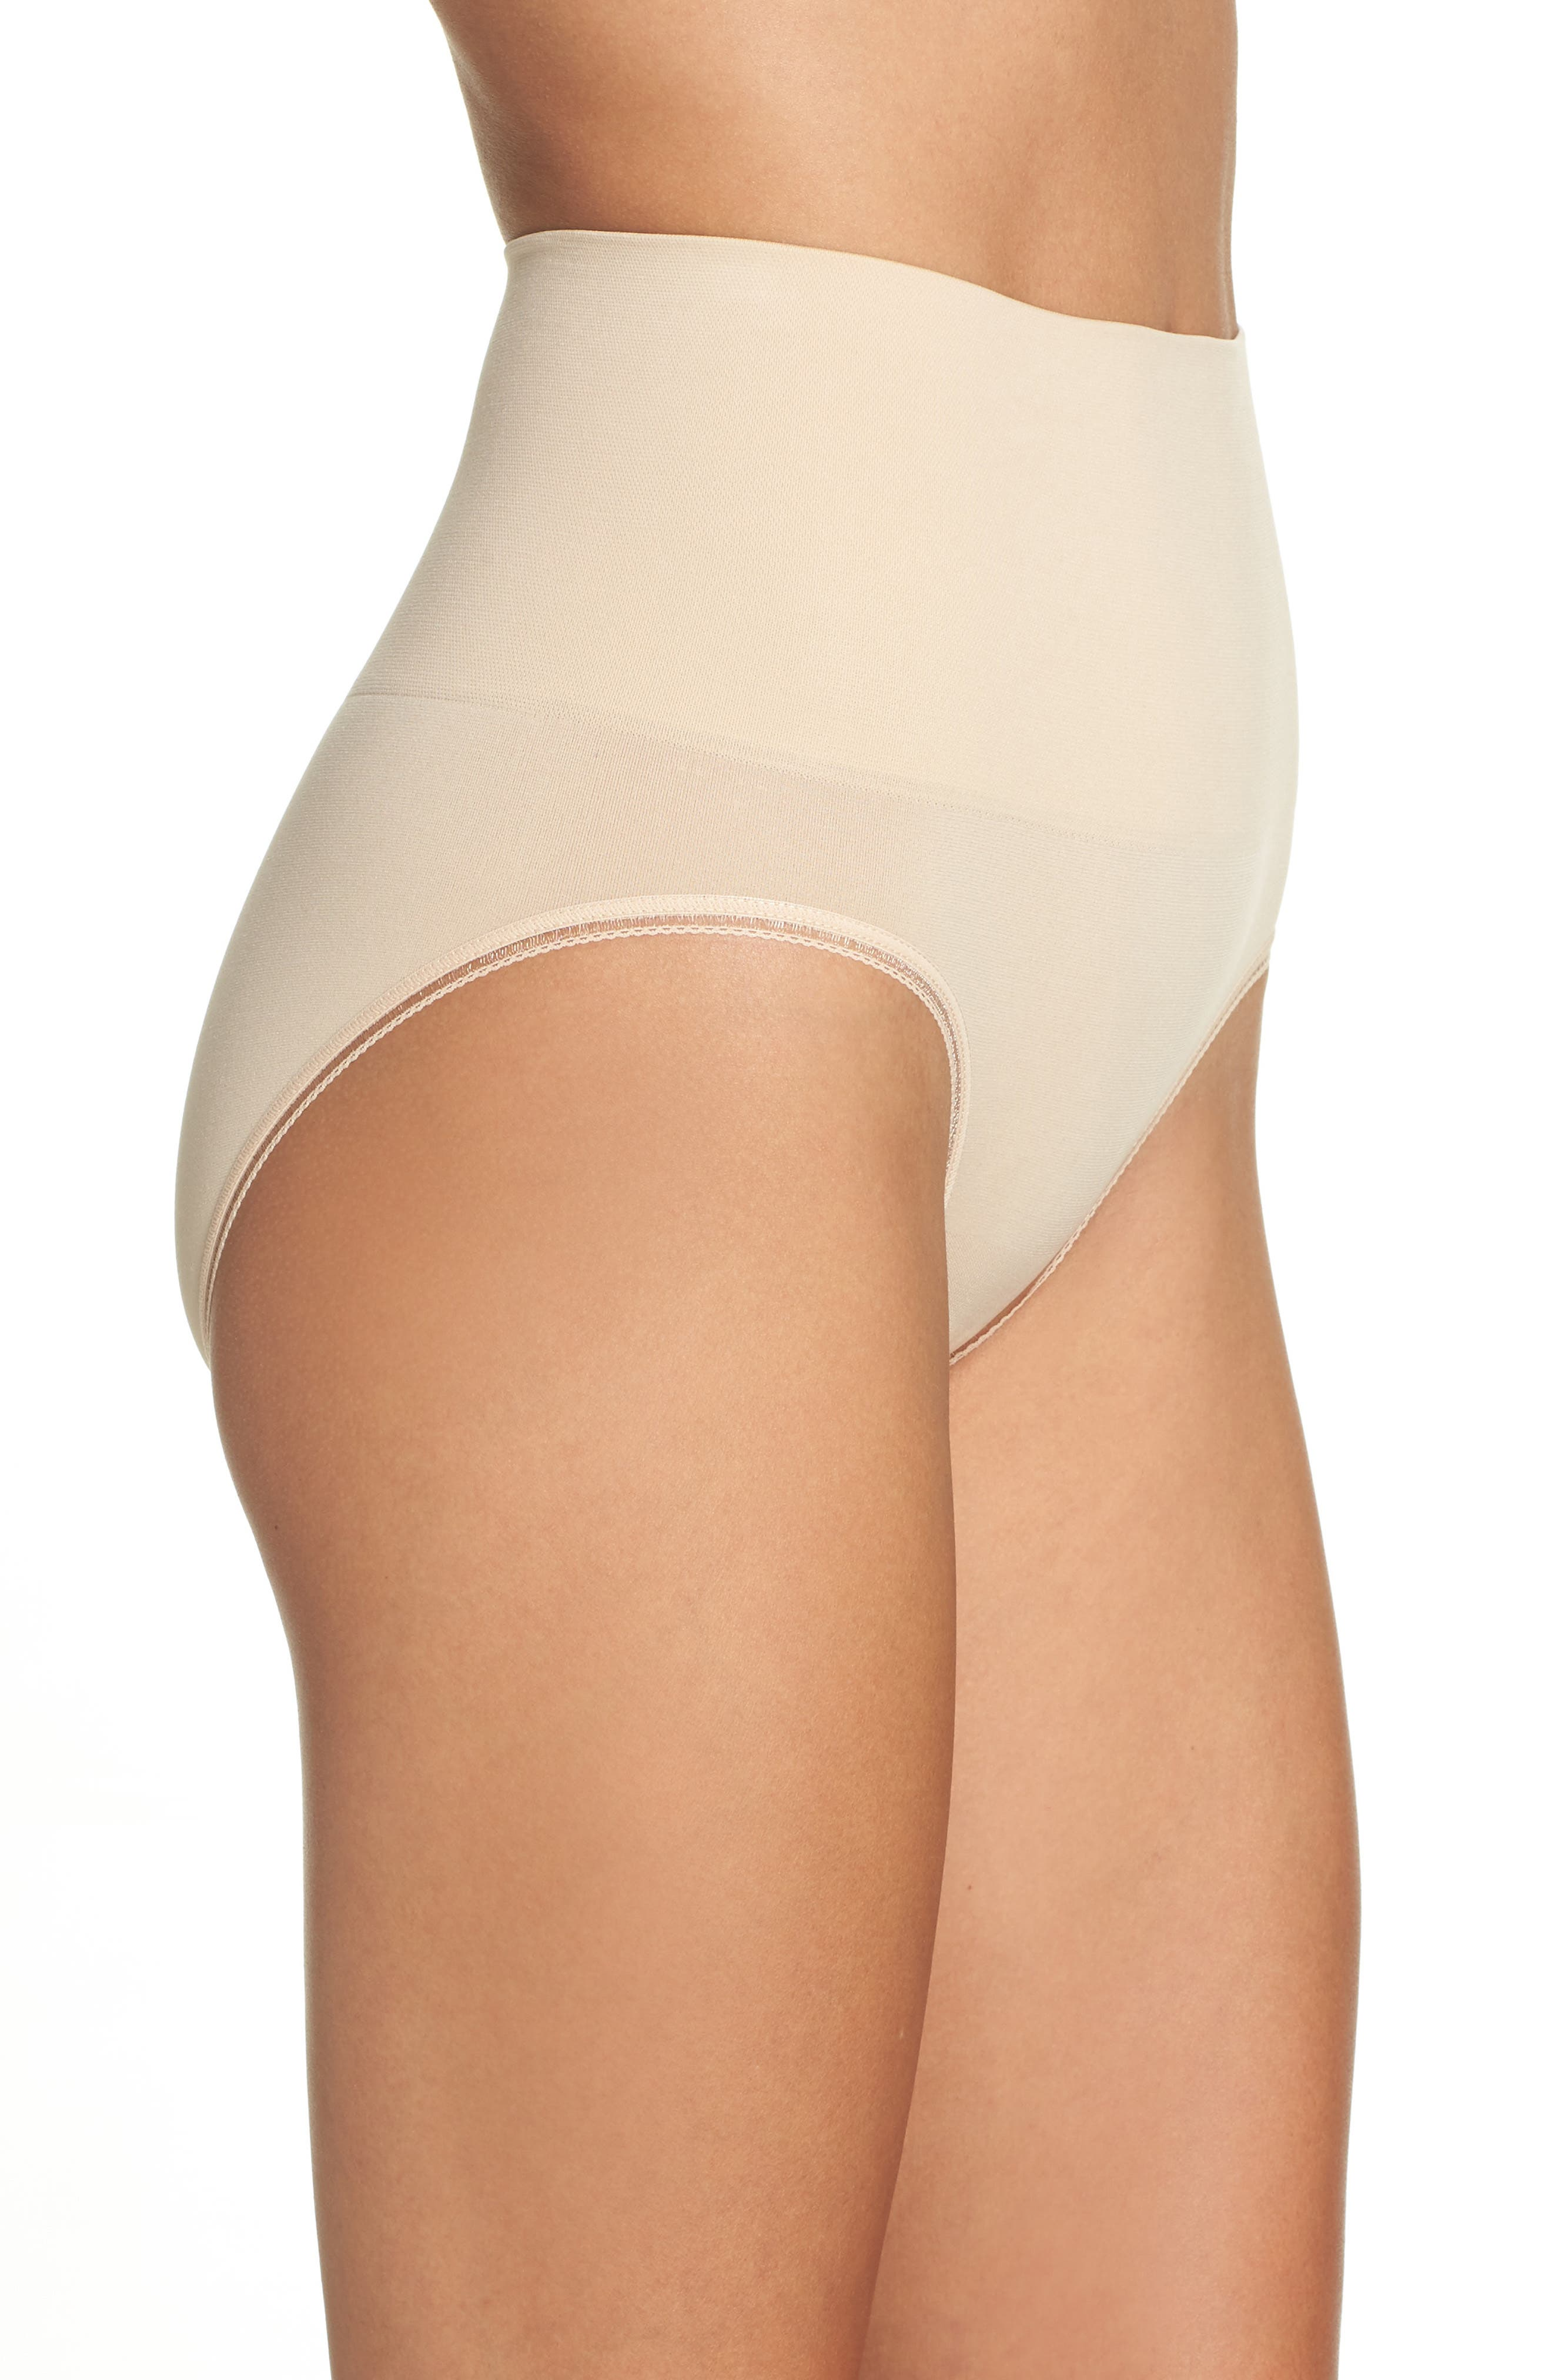 Ultralight Seamless Shaping Briefs,                             Alternate thumbnail 3, color,                             Frappe